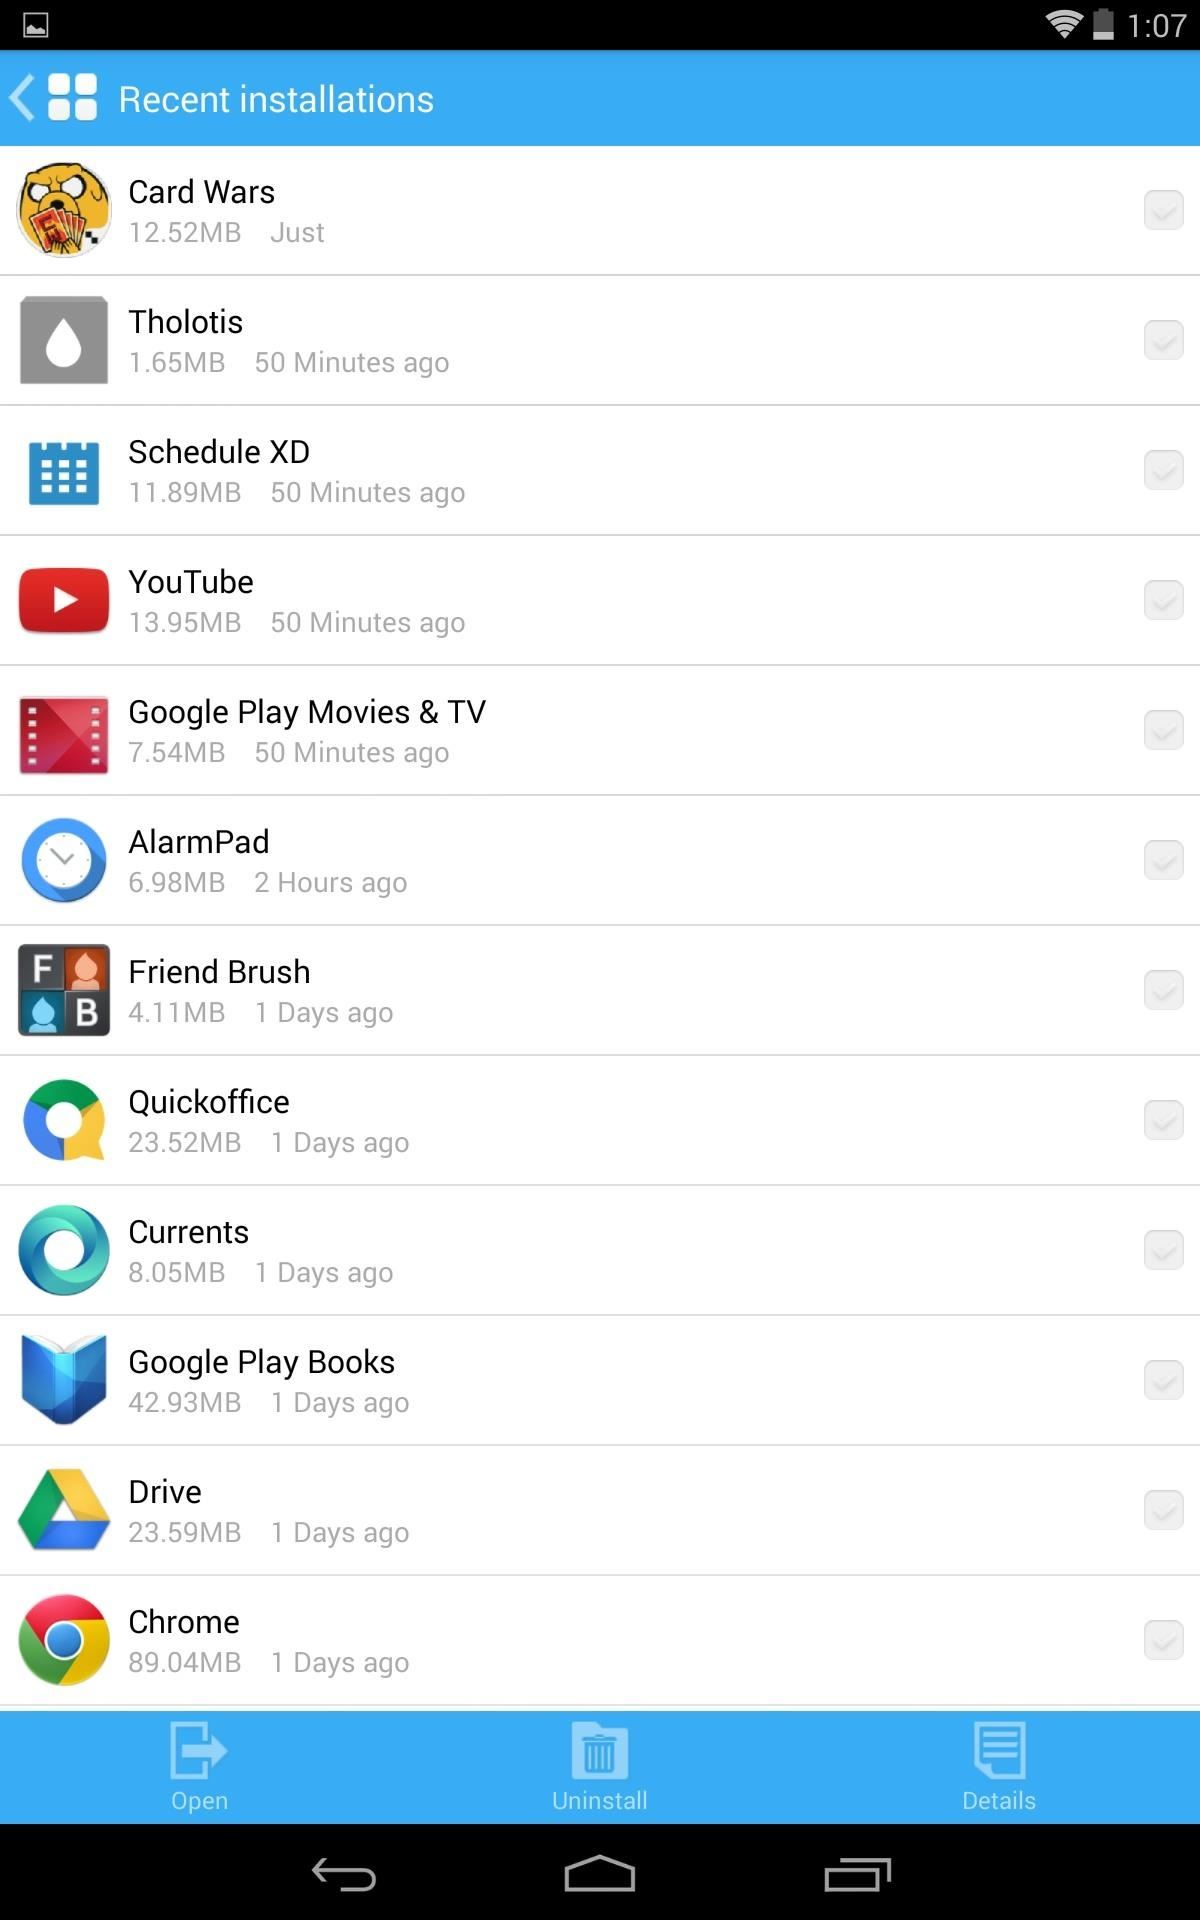 The Easiest Way to Access Recent Files & Photos on Your Nexus 7